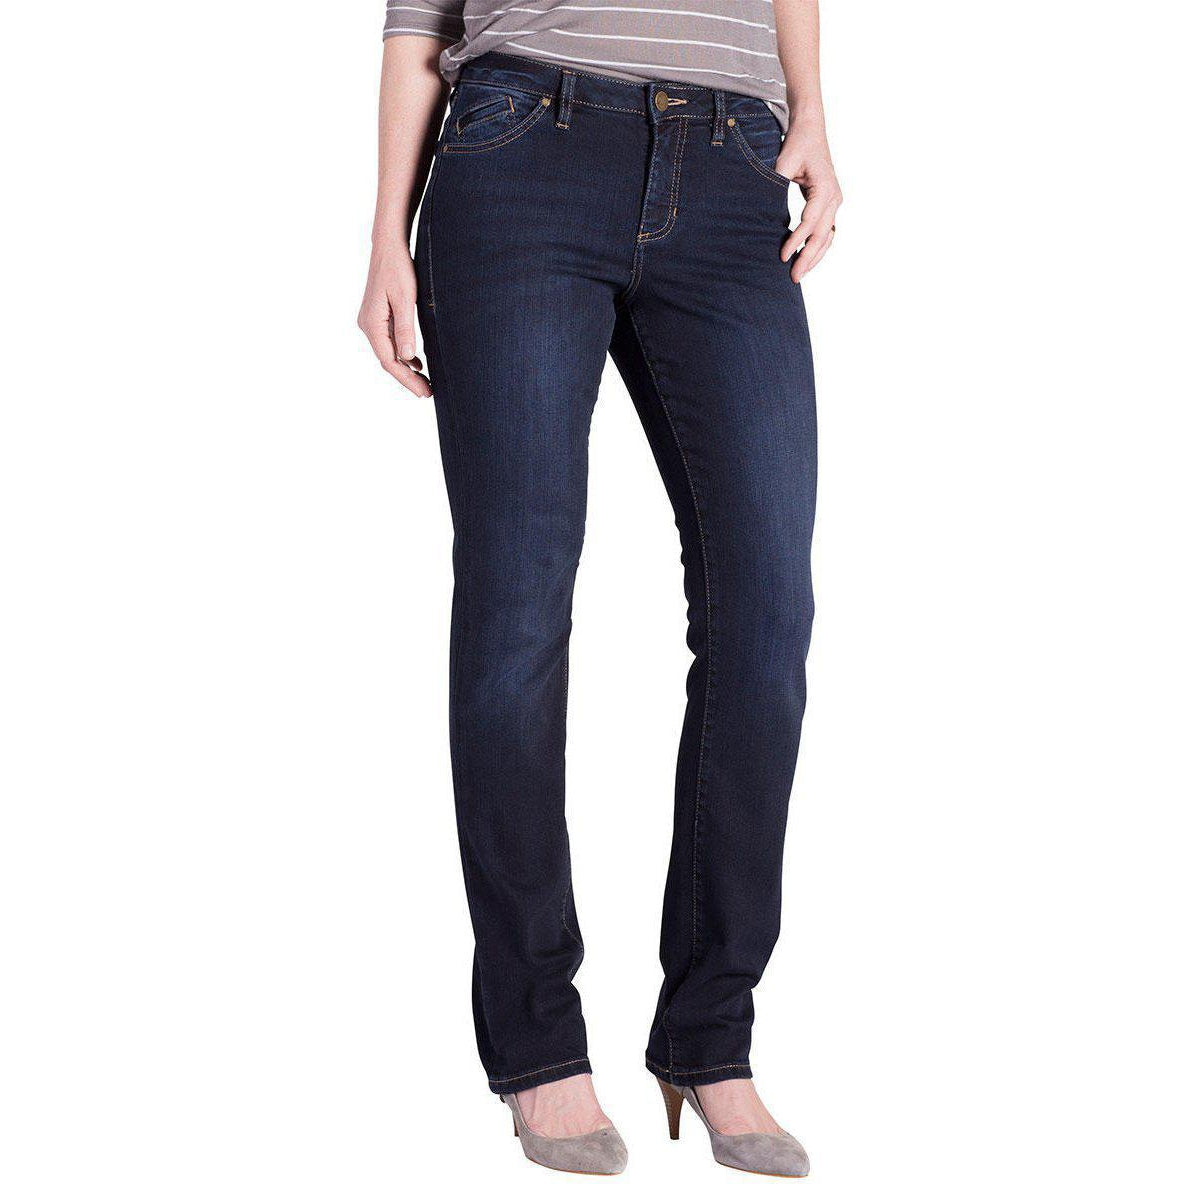 Portia Straight - Dark Denim-Jeans-Lizzy's Pink Boutique